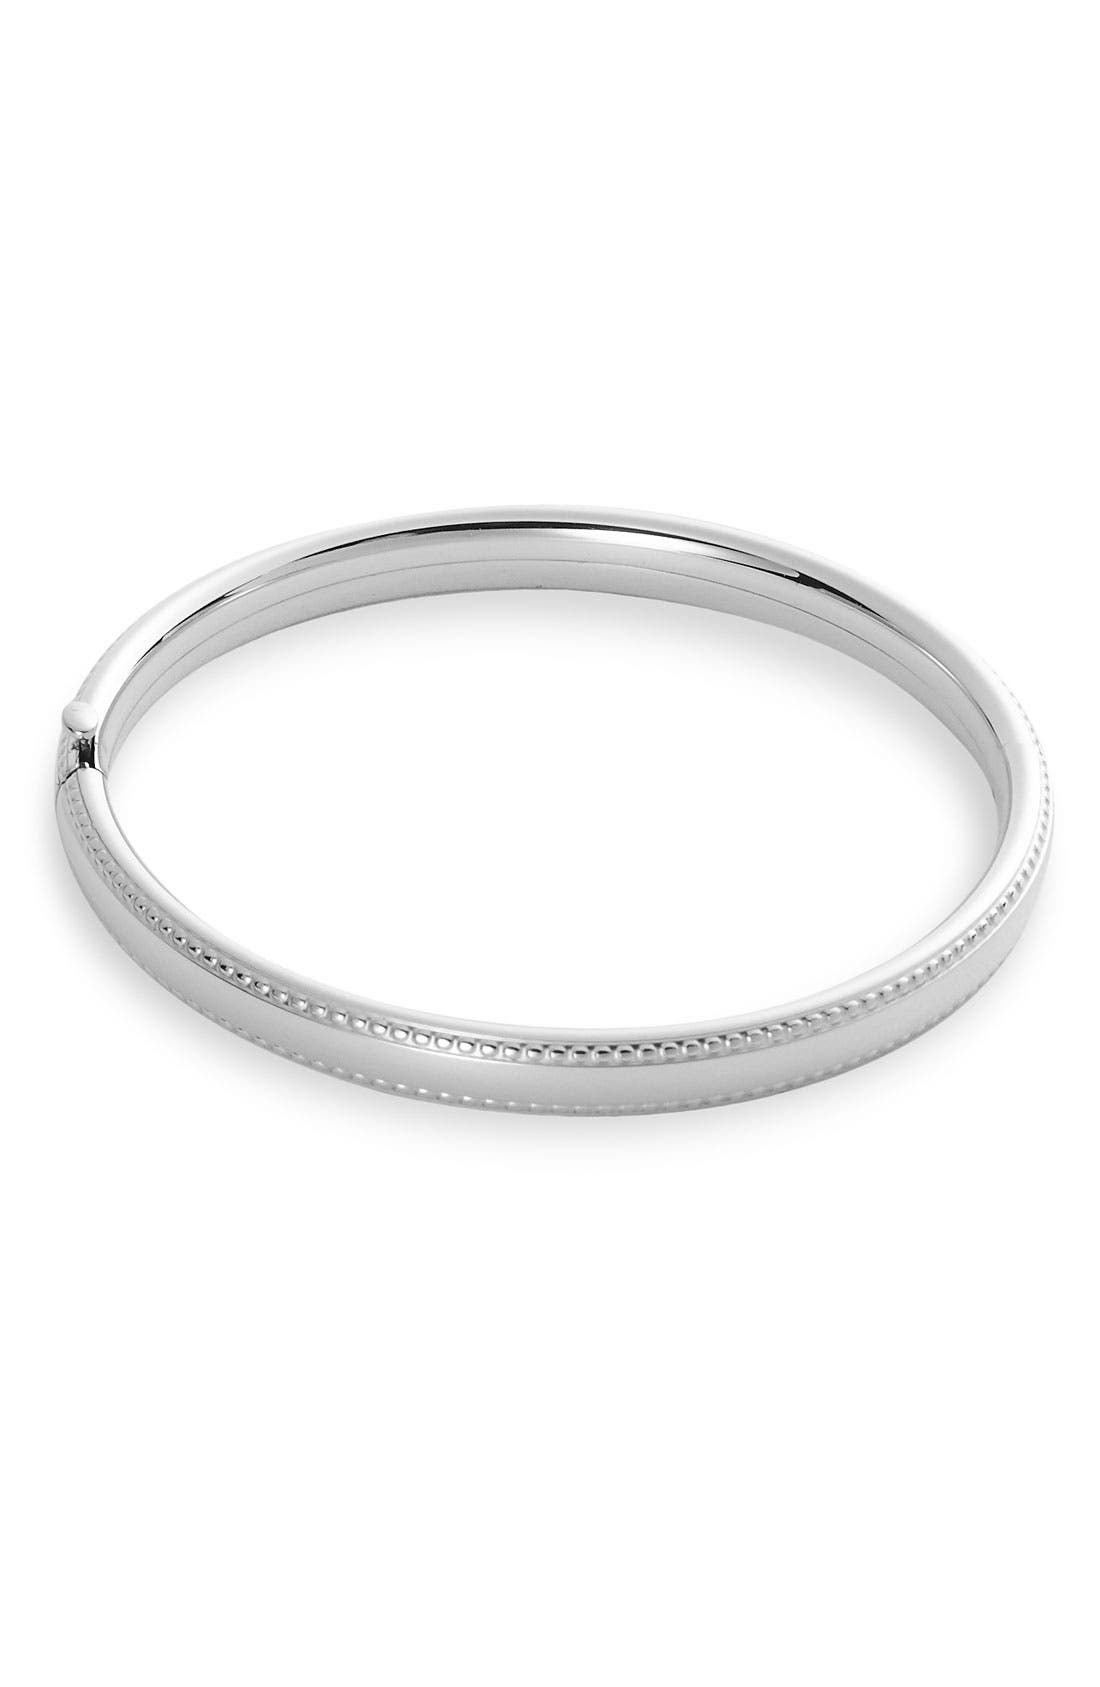 Alternate Image 1 Selected - Bead Edge Silver Bangle (Infant)